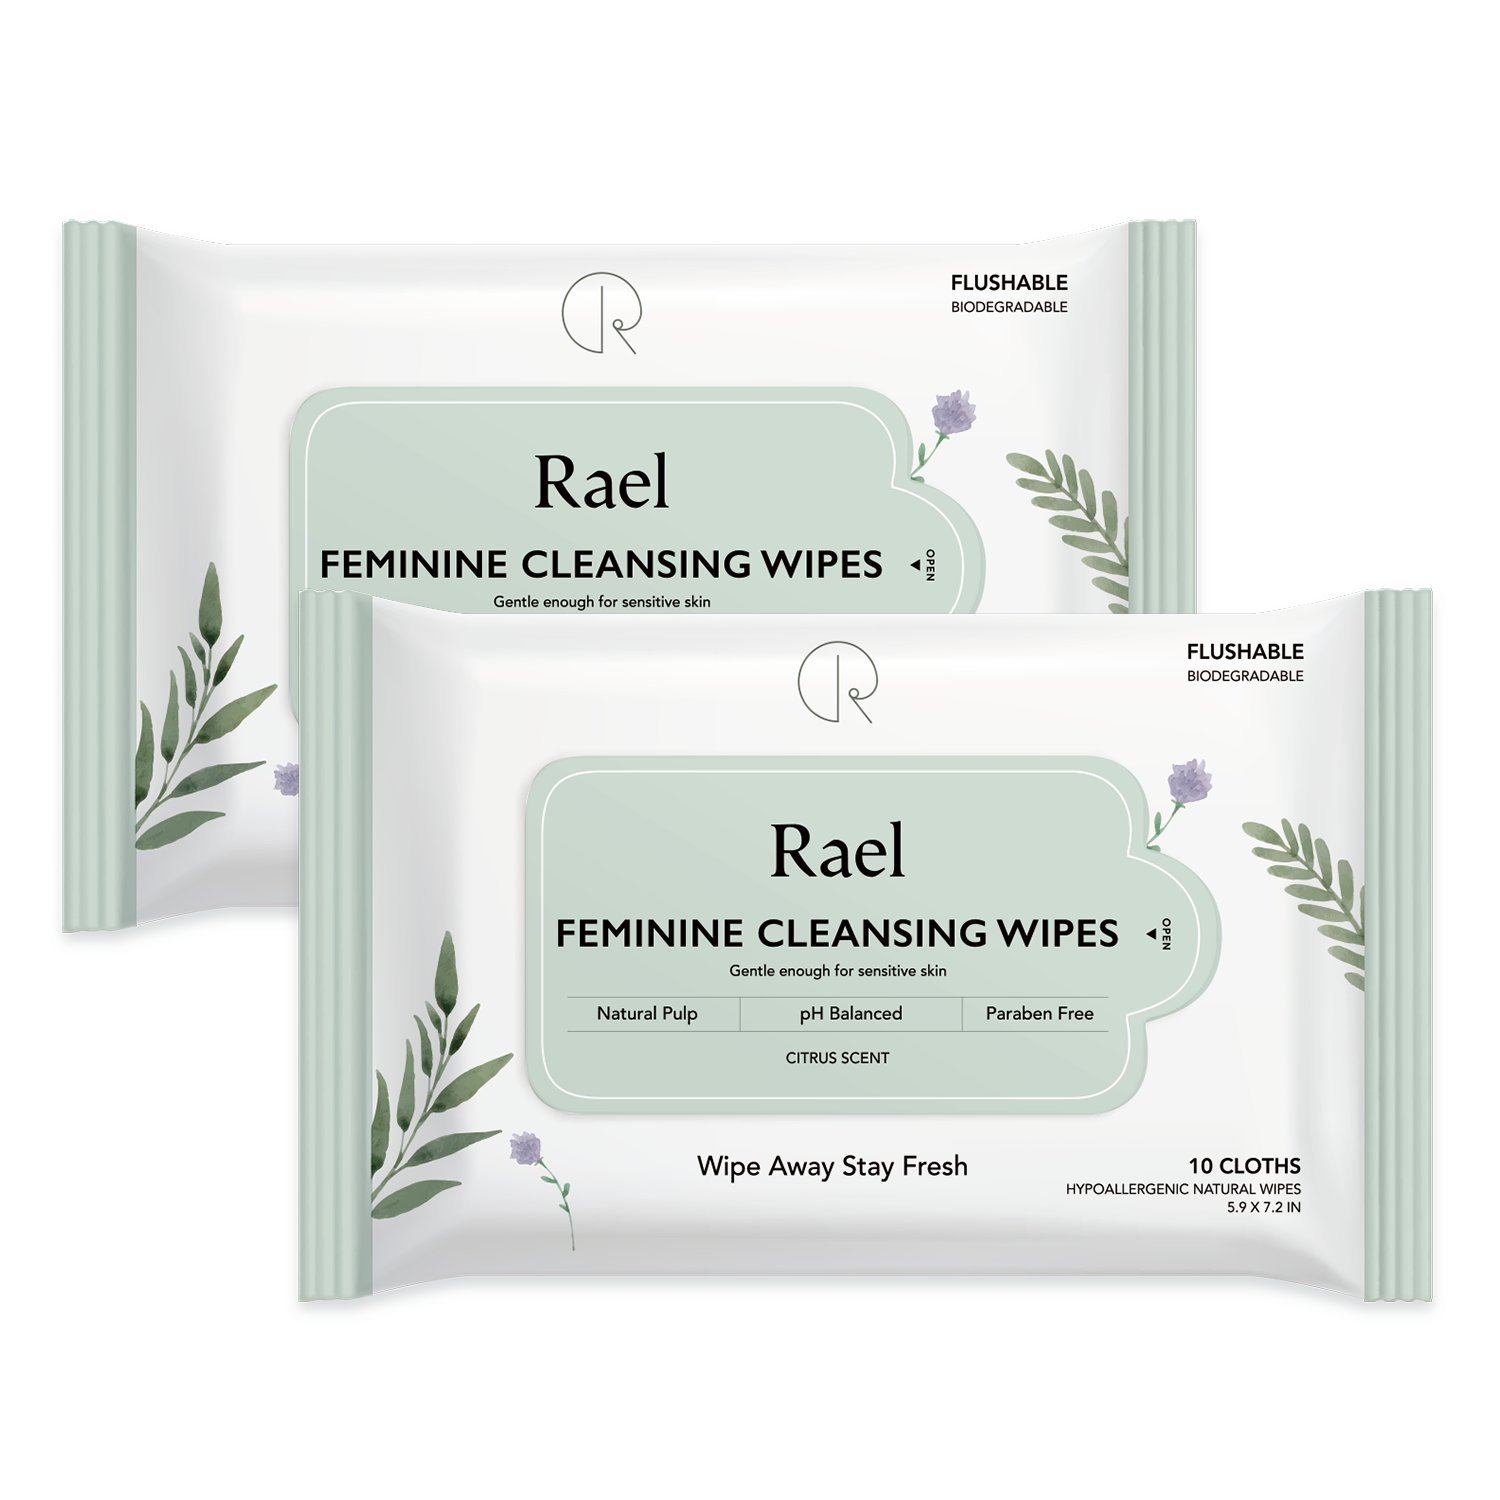 Feminine wipes for sensitive skin